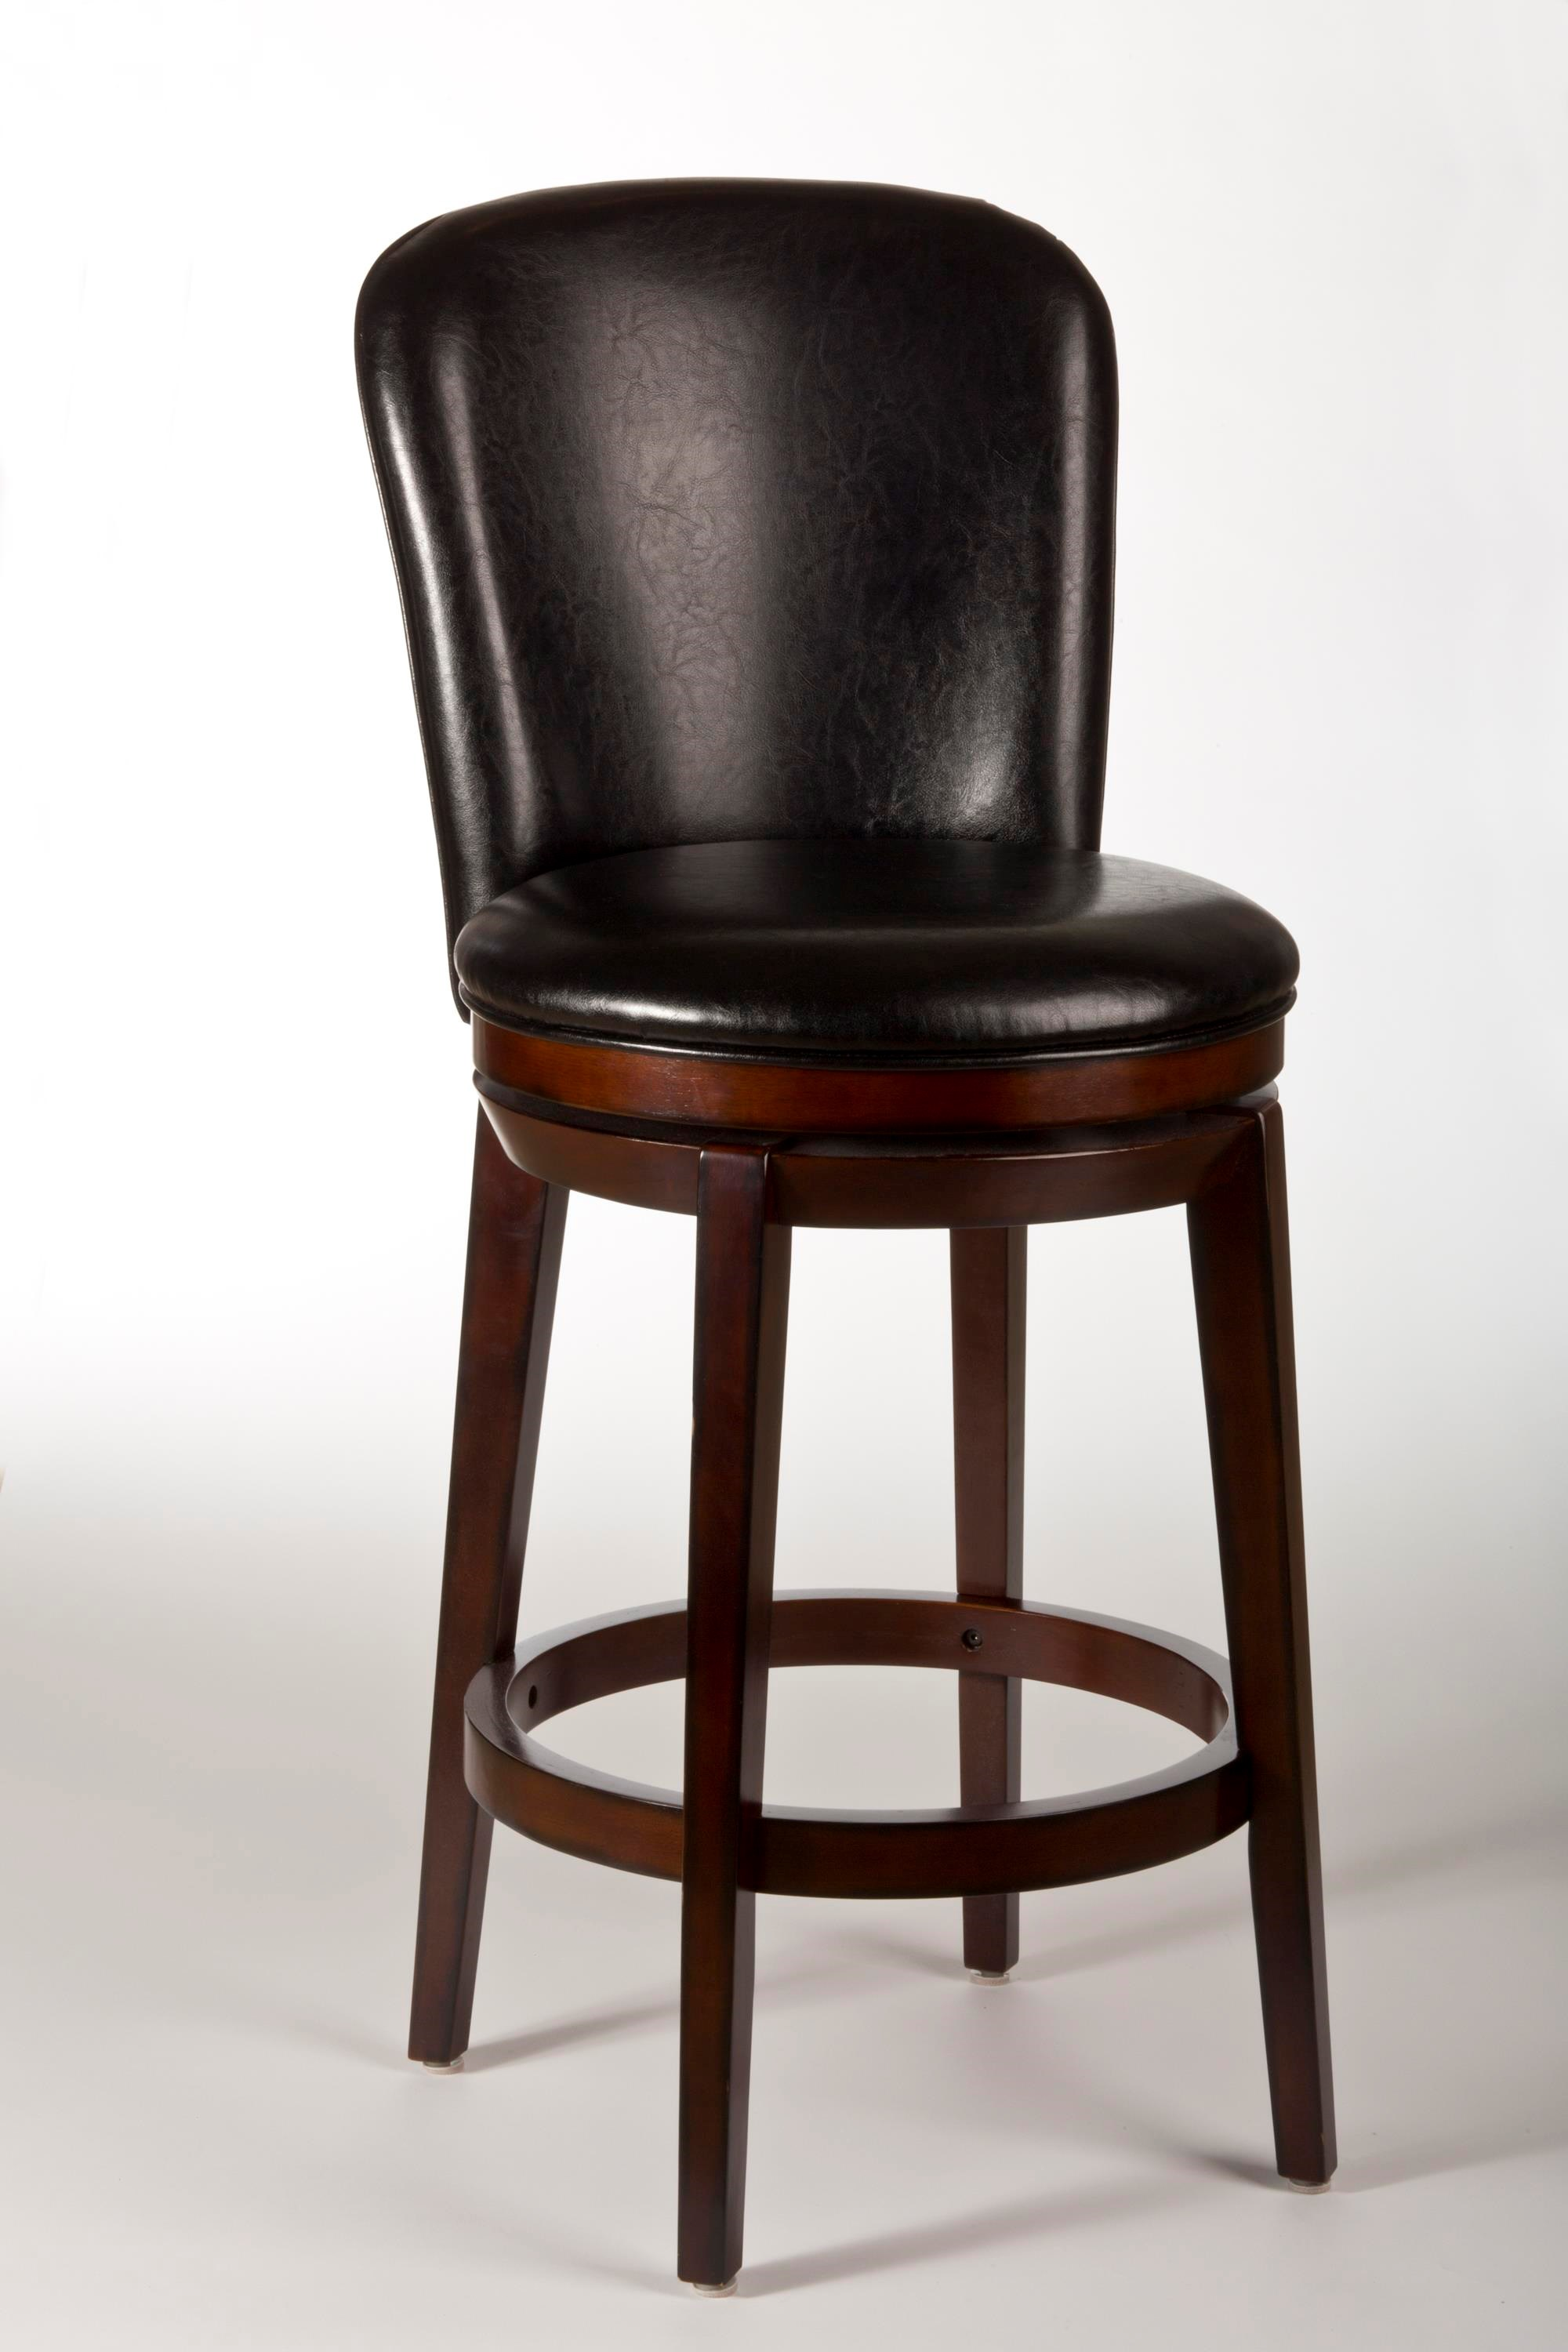 Hillsdale Metal Stools Victoria Swivel Bar Stool With